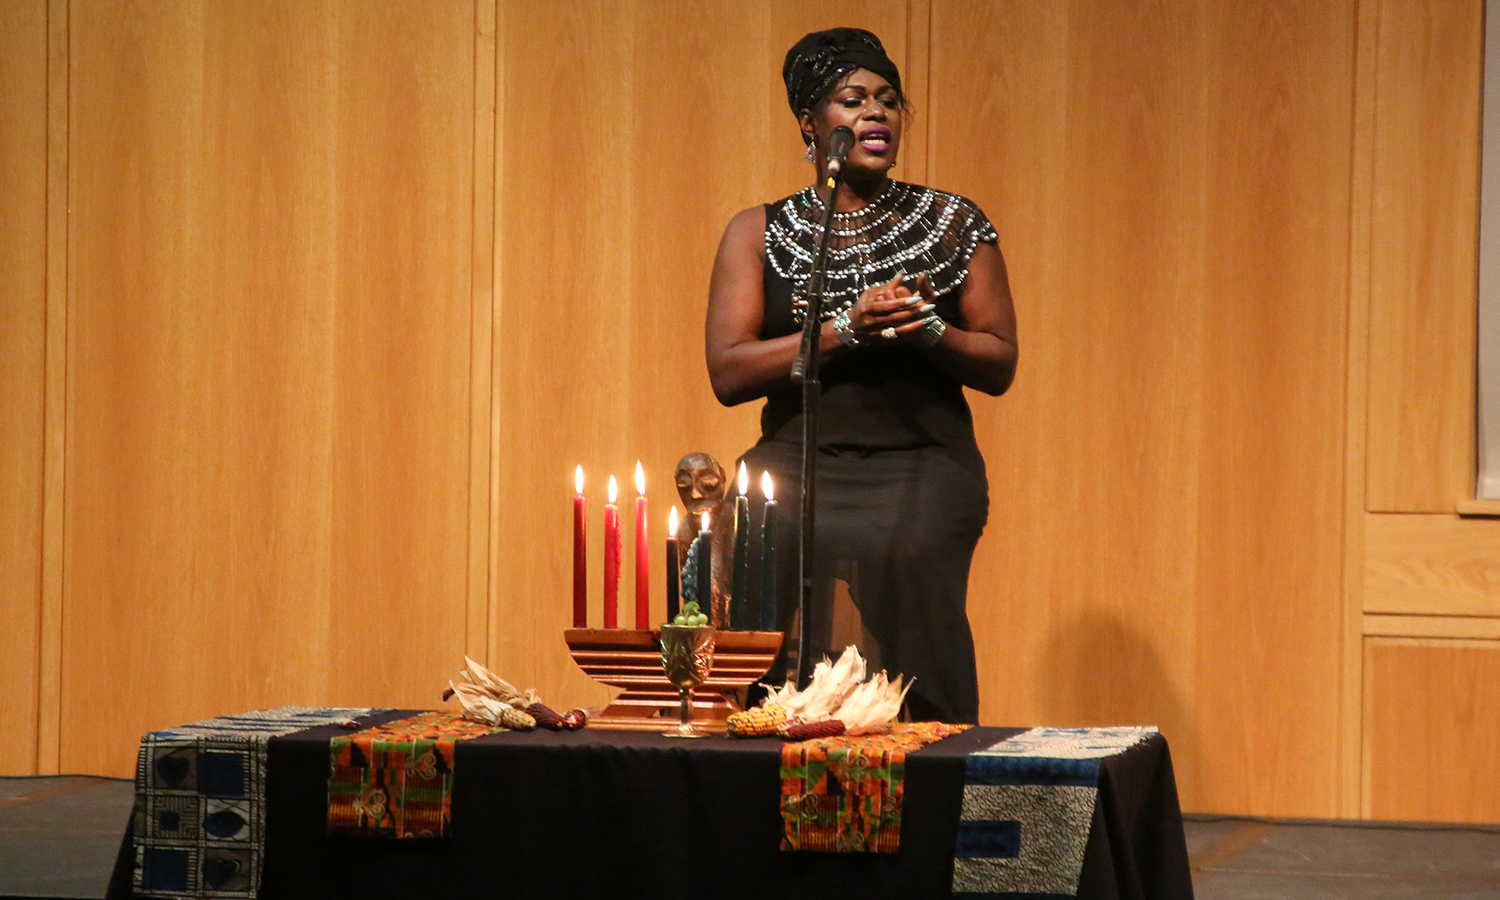 Transgender singer/songwriter Shea Diamond performs during the annual Kwanzaa Celebration in the Vandervort Room of the Scandling Campus Center.